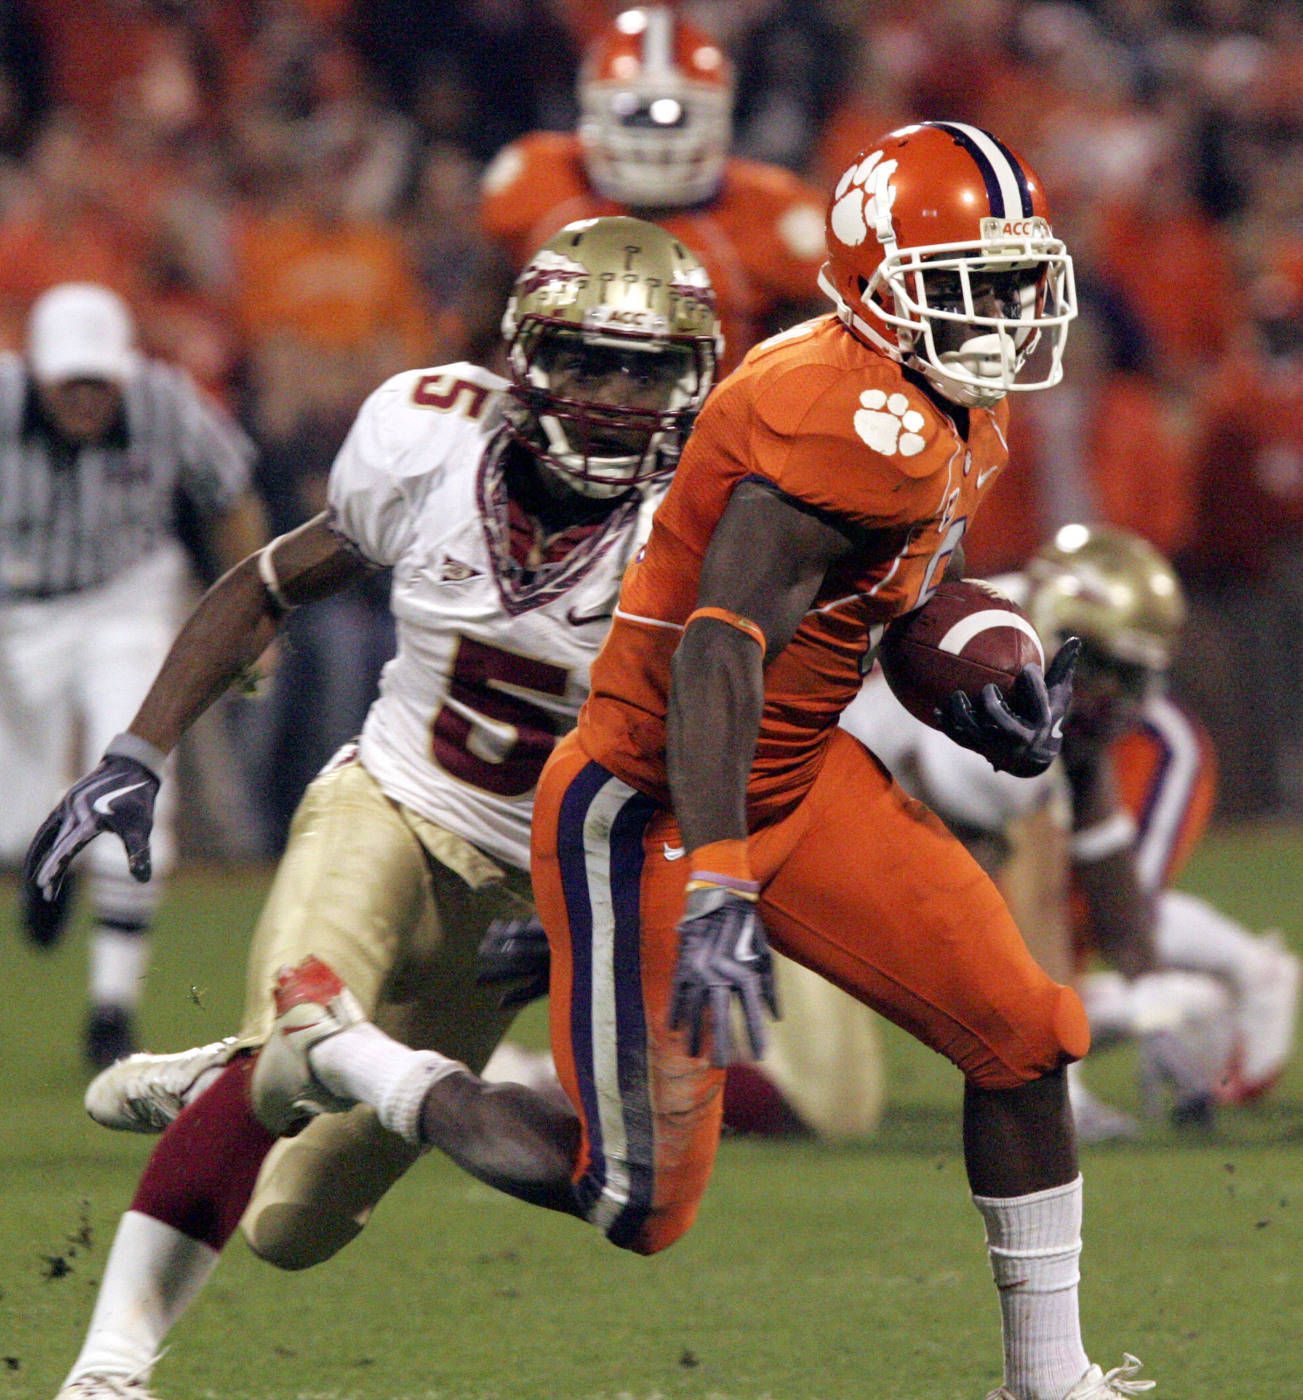 Clemson's Jacoby Ford (6) runs for a first down as Florida State's Greg Reid (5) tries to stop during the first half. (AP Photo/Mary Ann Chastain)